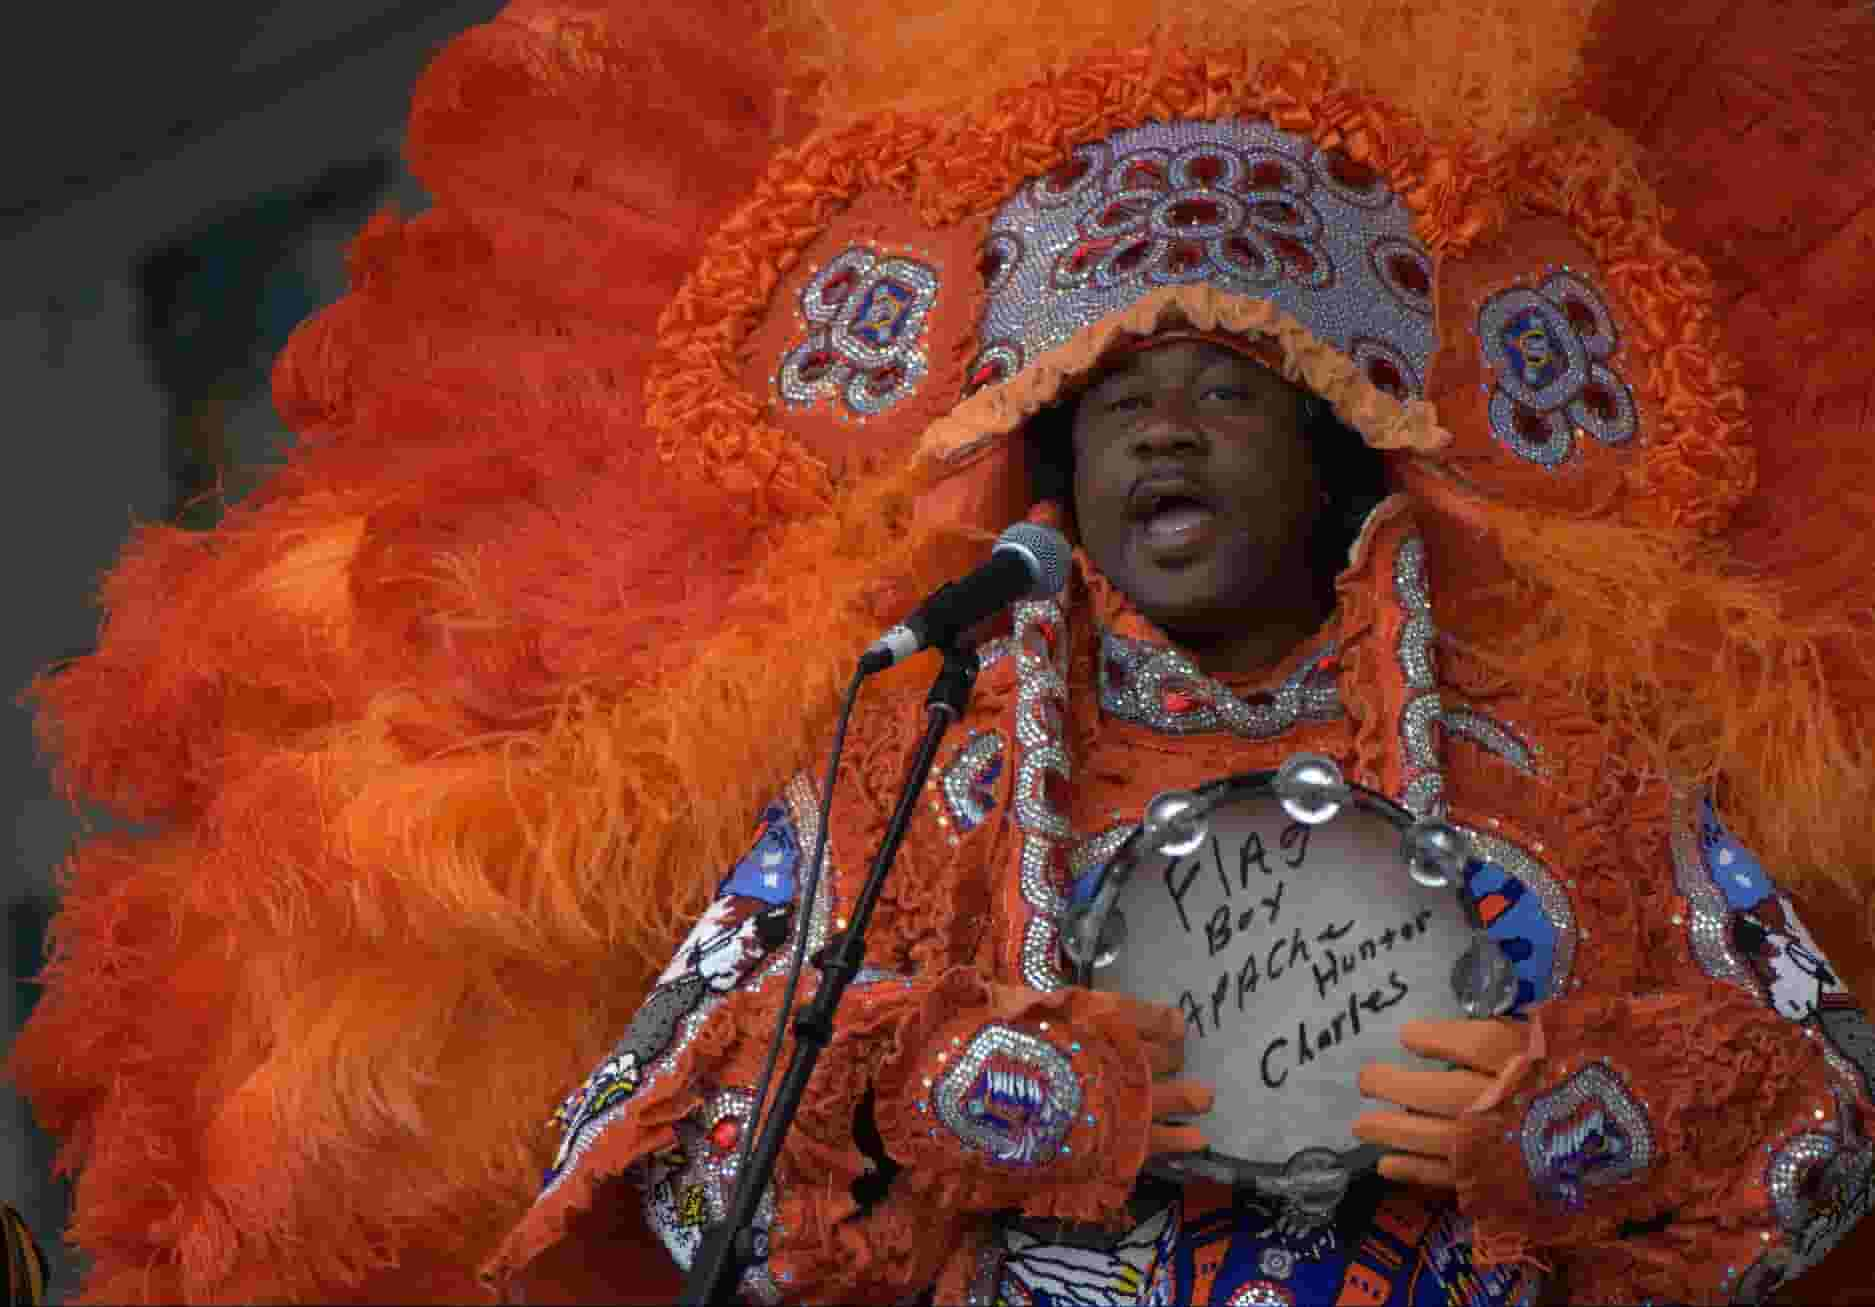 Mardi Gras Indian performing during our 2009 tour to the New Orleans Jazz and Heritage Festival (one of our favorite events and right at home!)